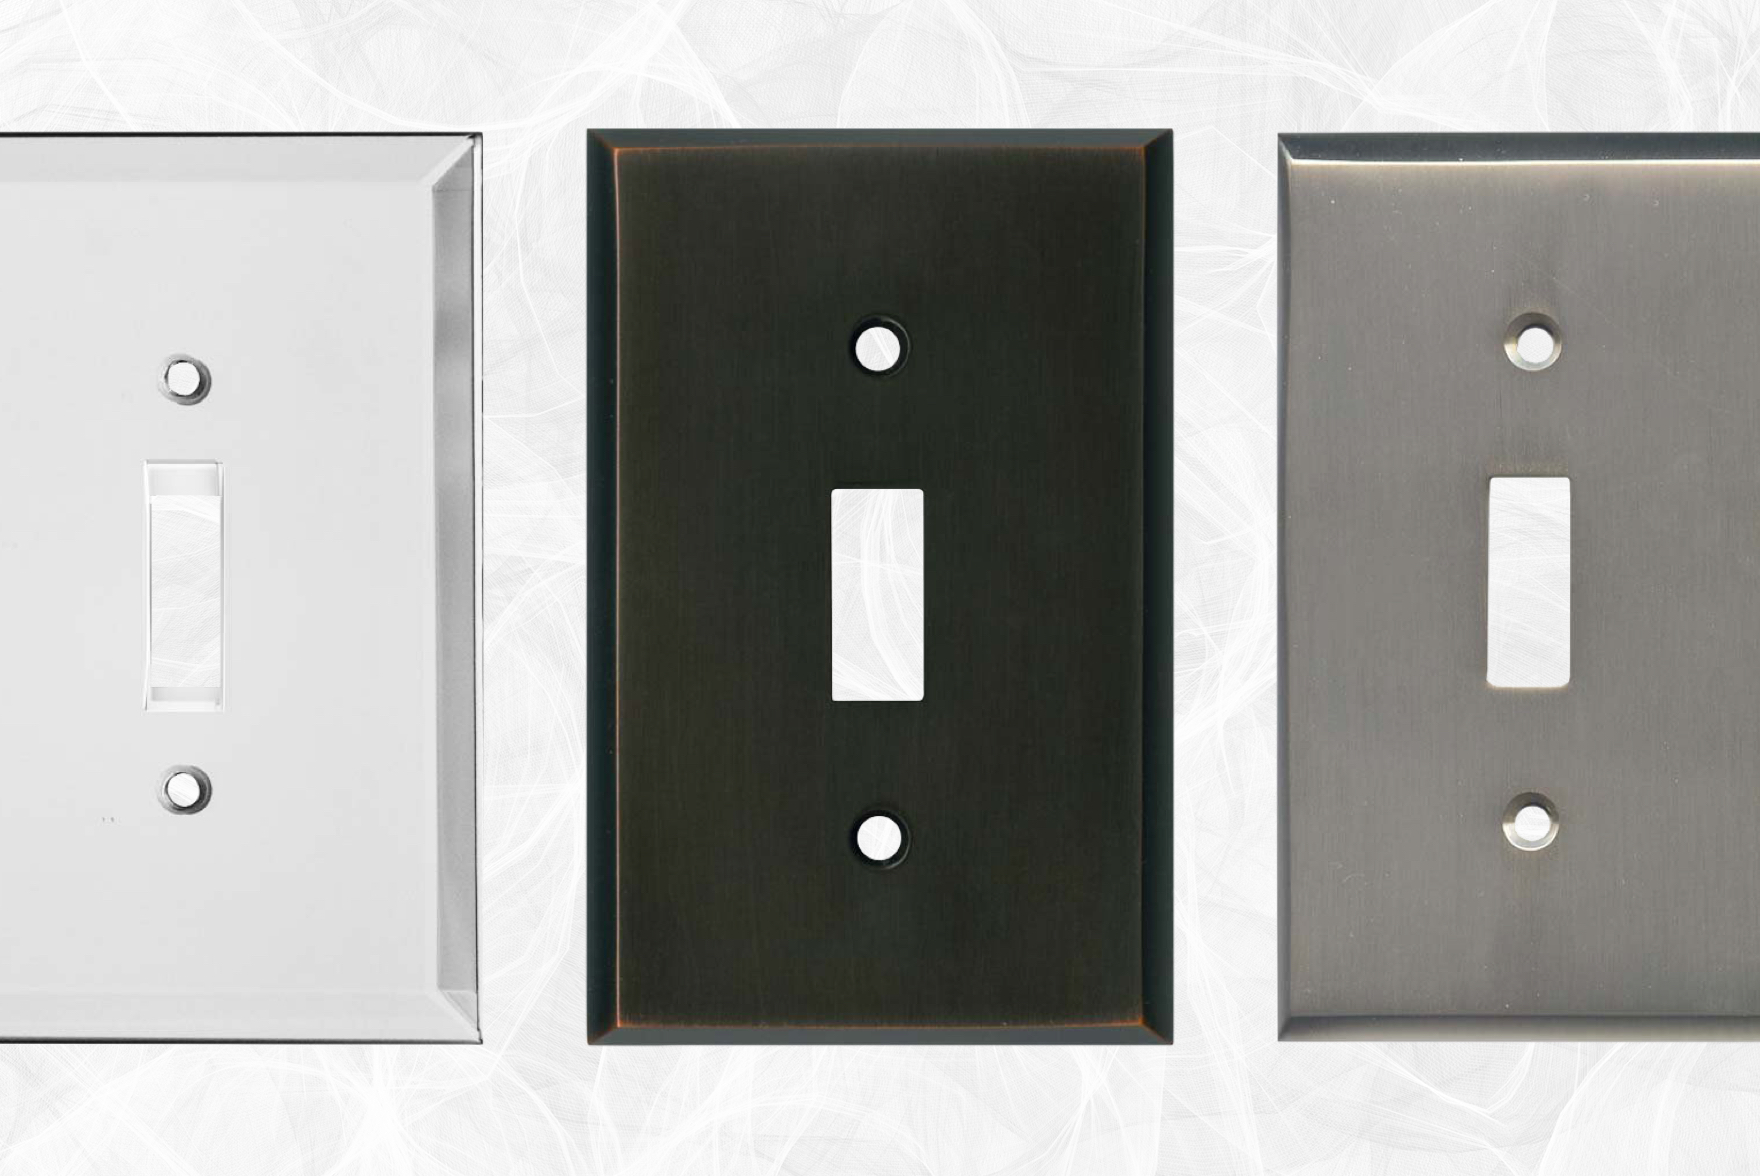 10 Best Light Switch Covers of 2020